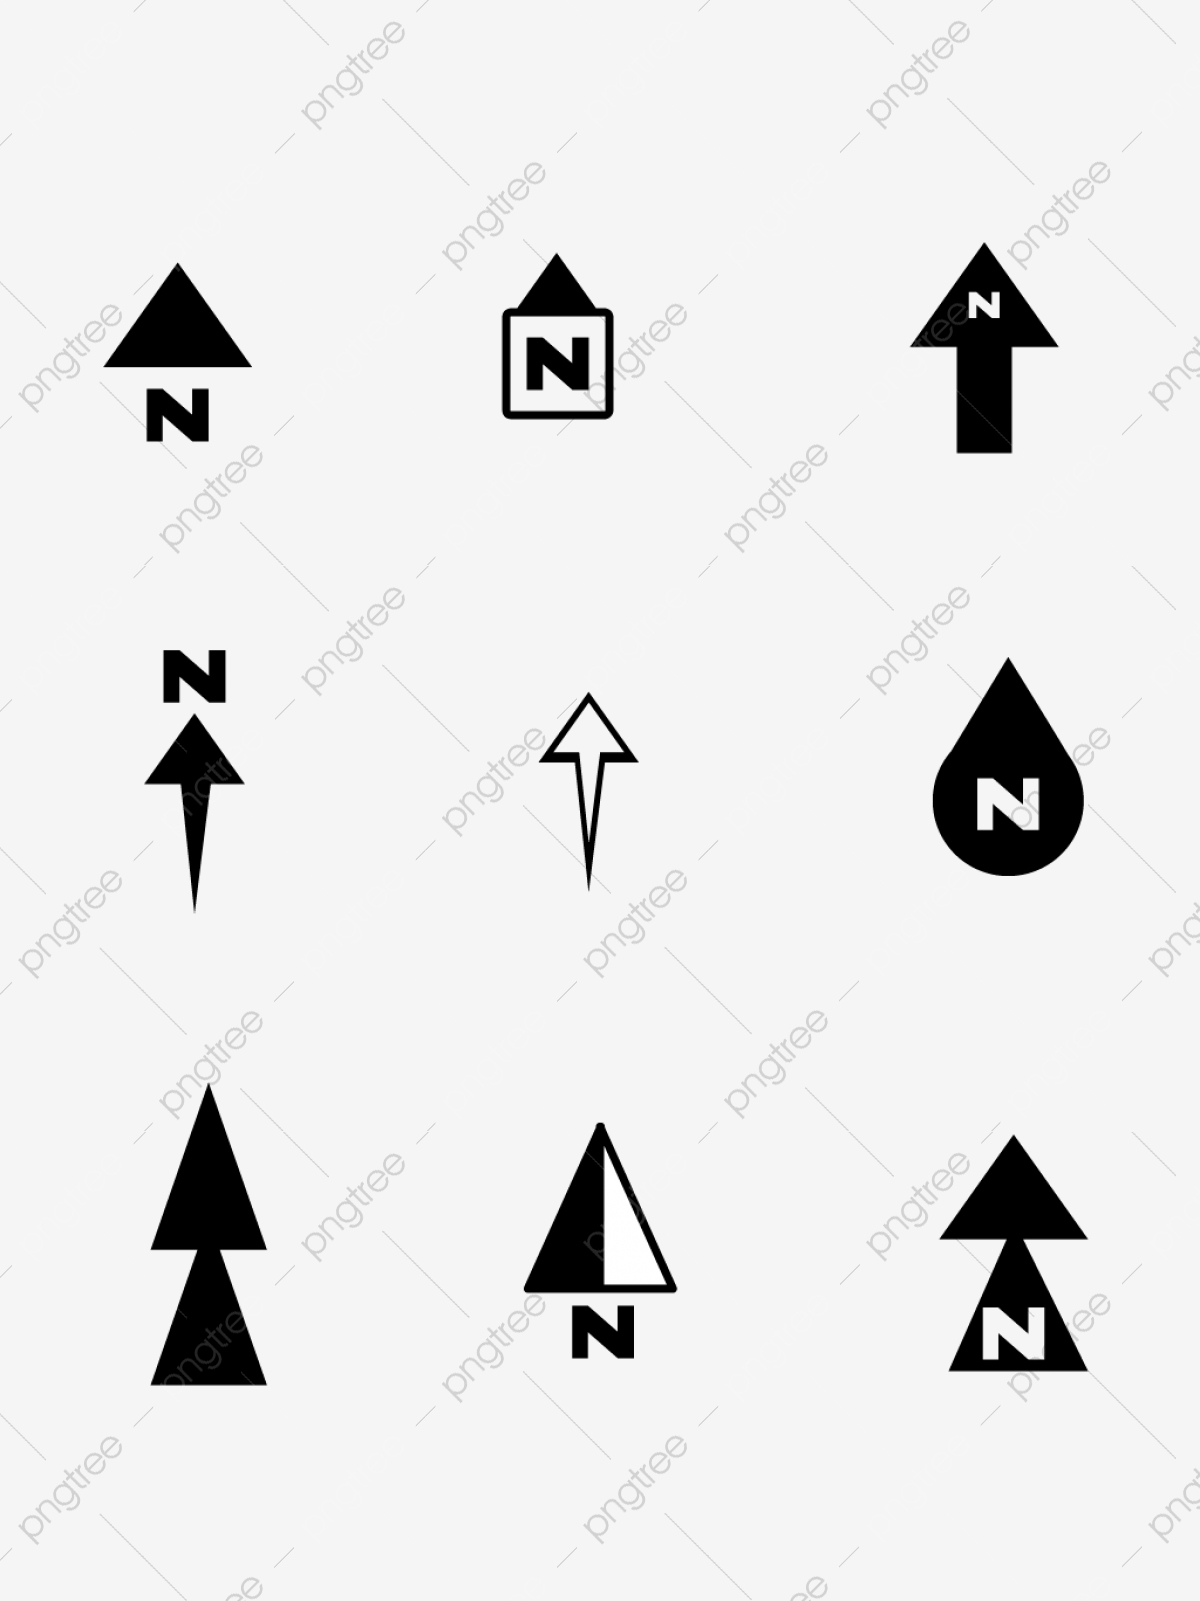 North Arrow Png Images Vector And Psd Files Free Download On Pngtree